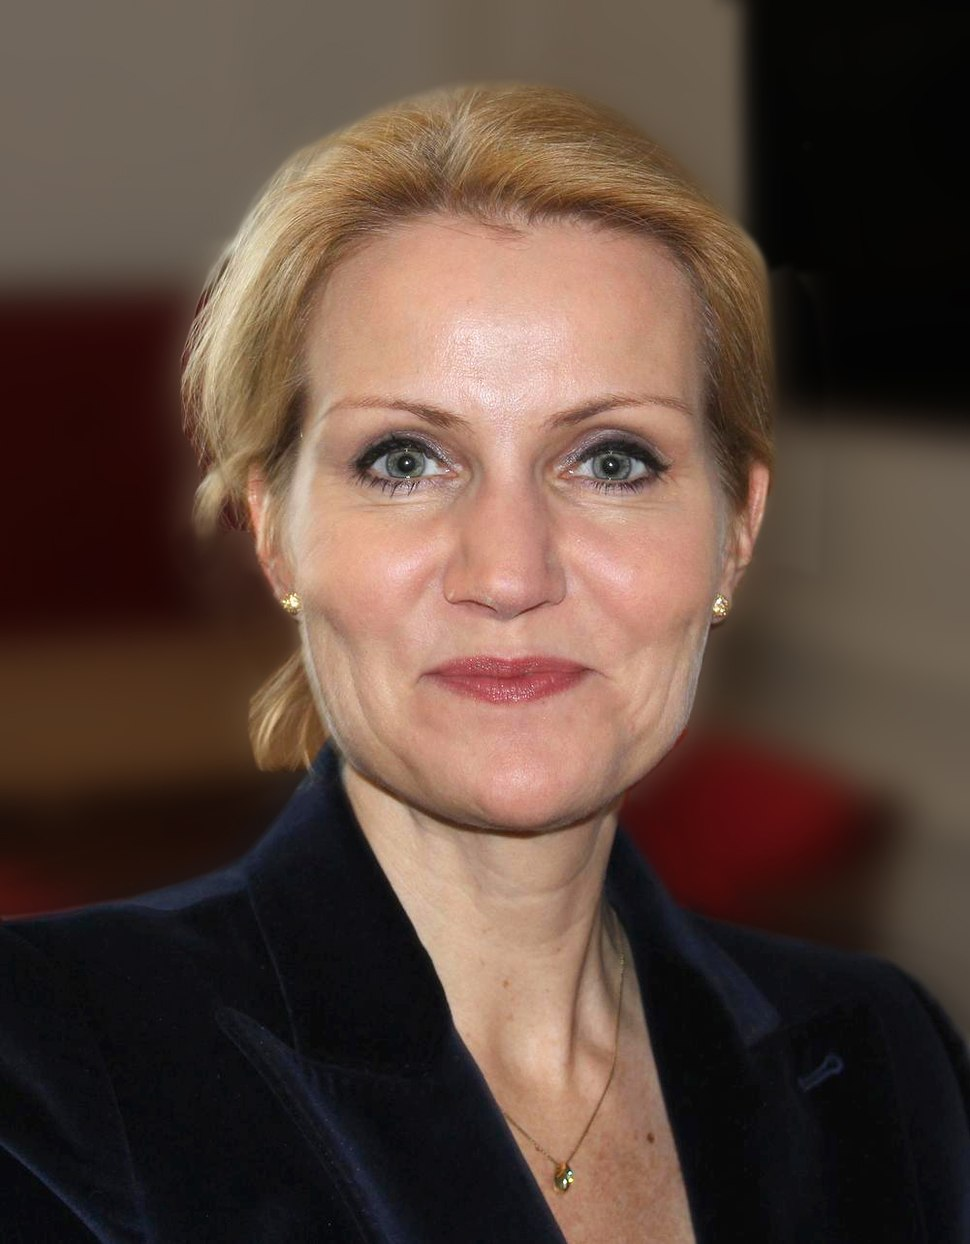 Helle Thorning-Schmidt portrait